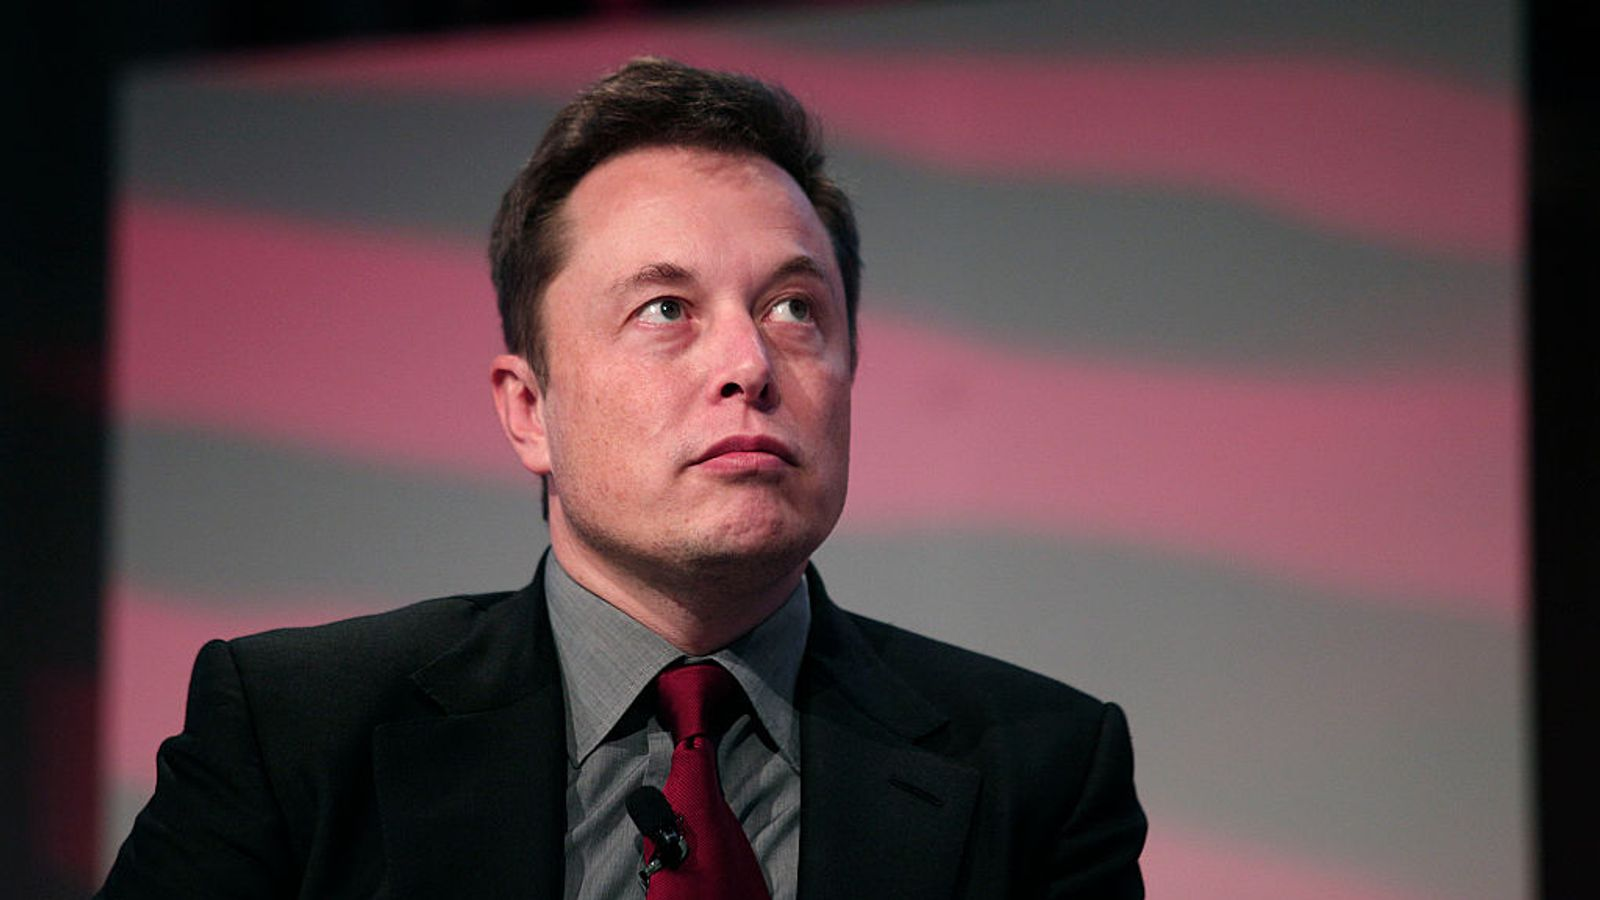 Coronavirus: Elon Musk's Tesla denies firing employees who stayed home during lockdown | Science & Tech News